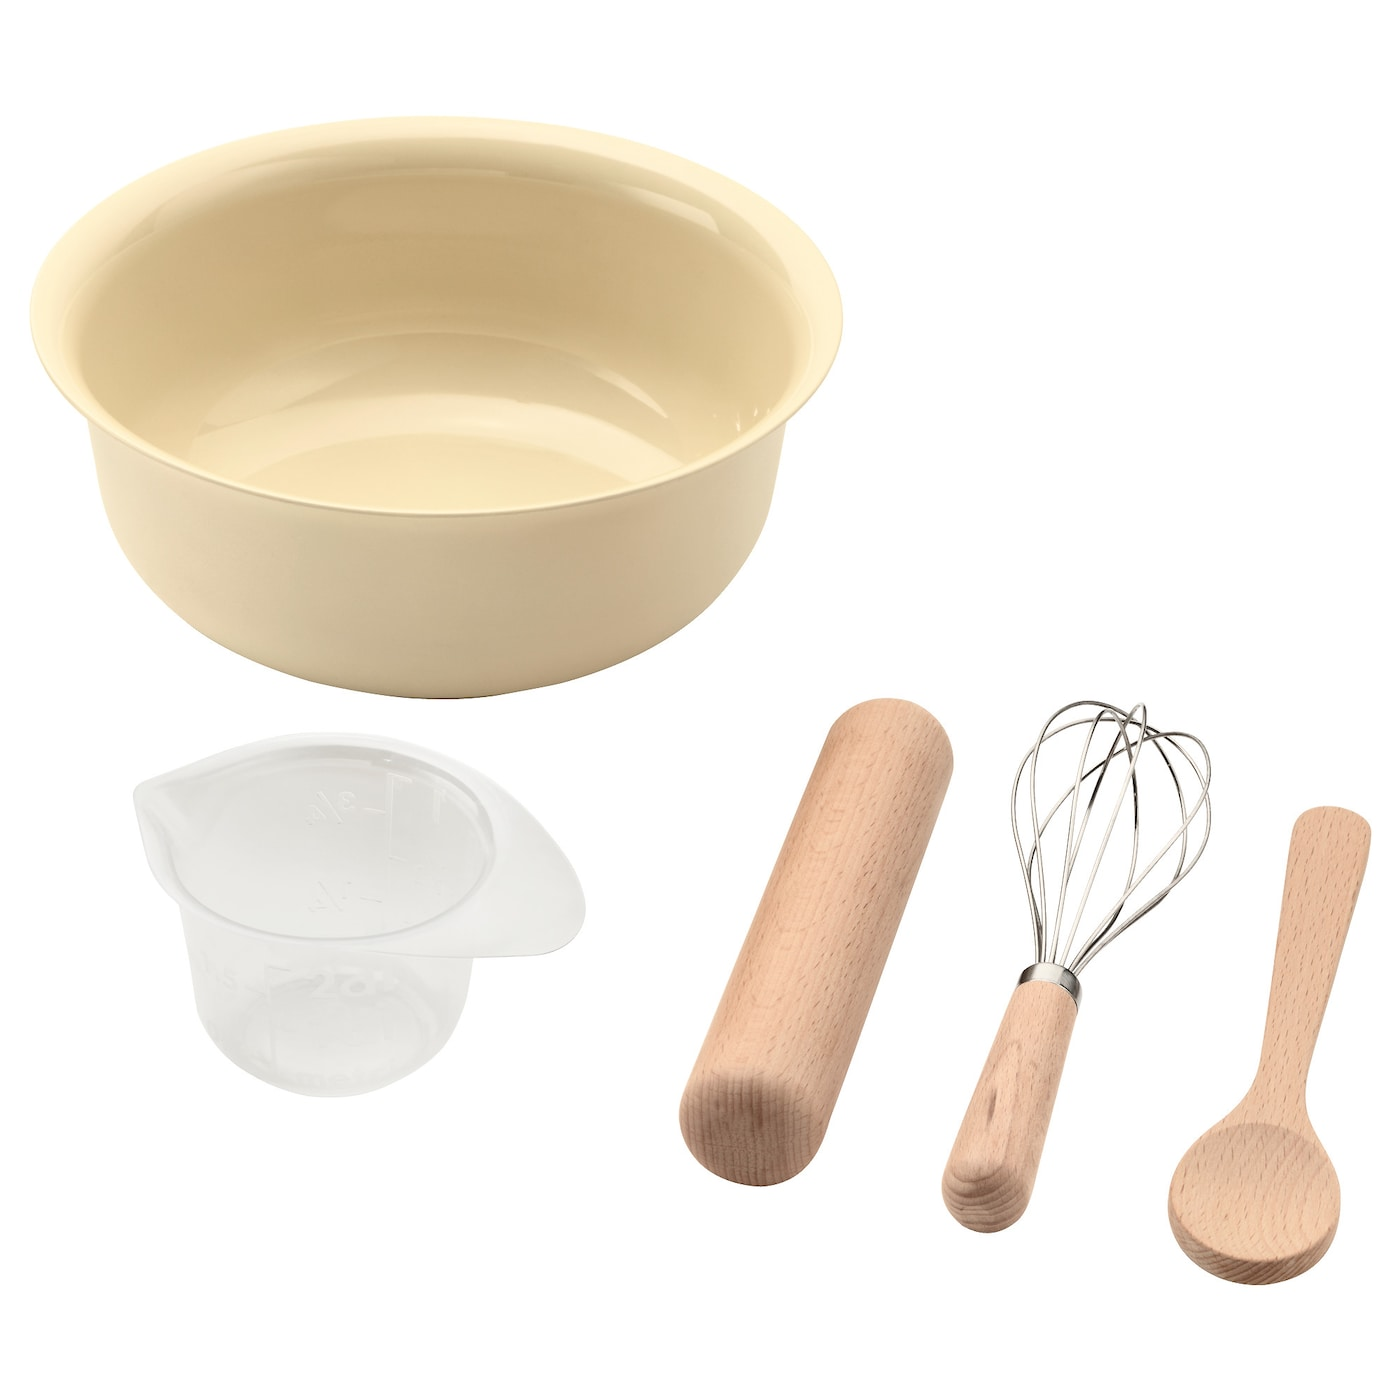 IKEA HEMRÖRA 5-piece baking set